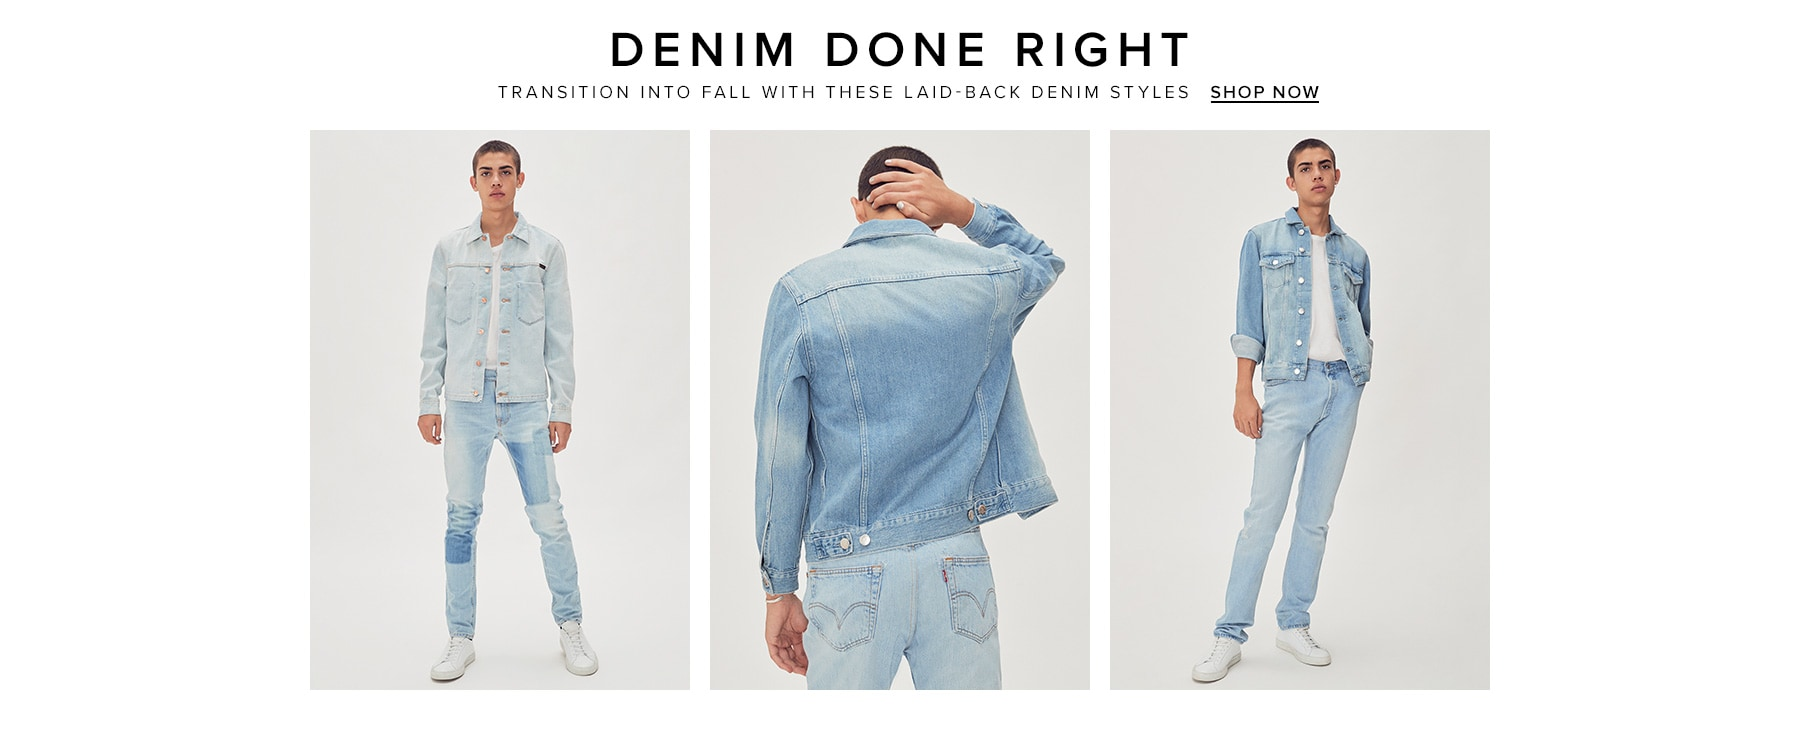 Denim done right. Transition into fall with these laid-back denim styles. Shop now.